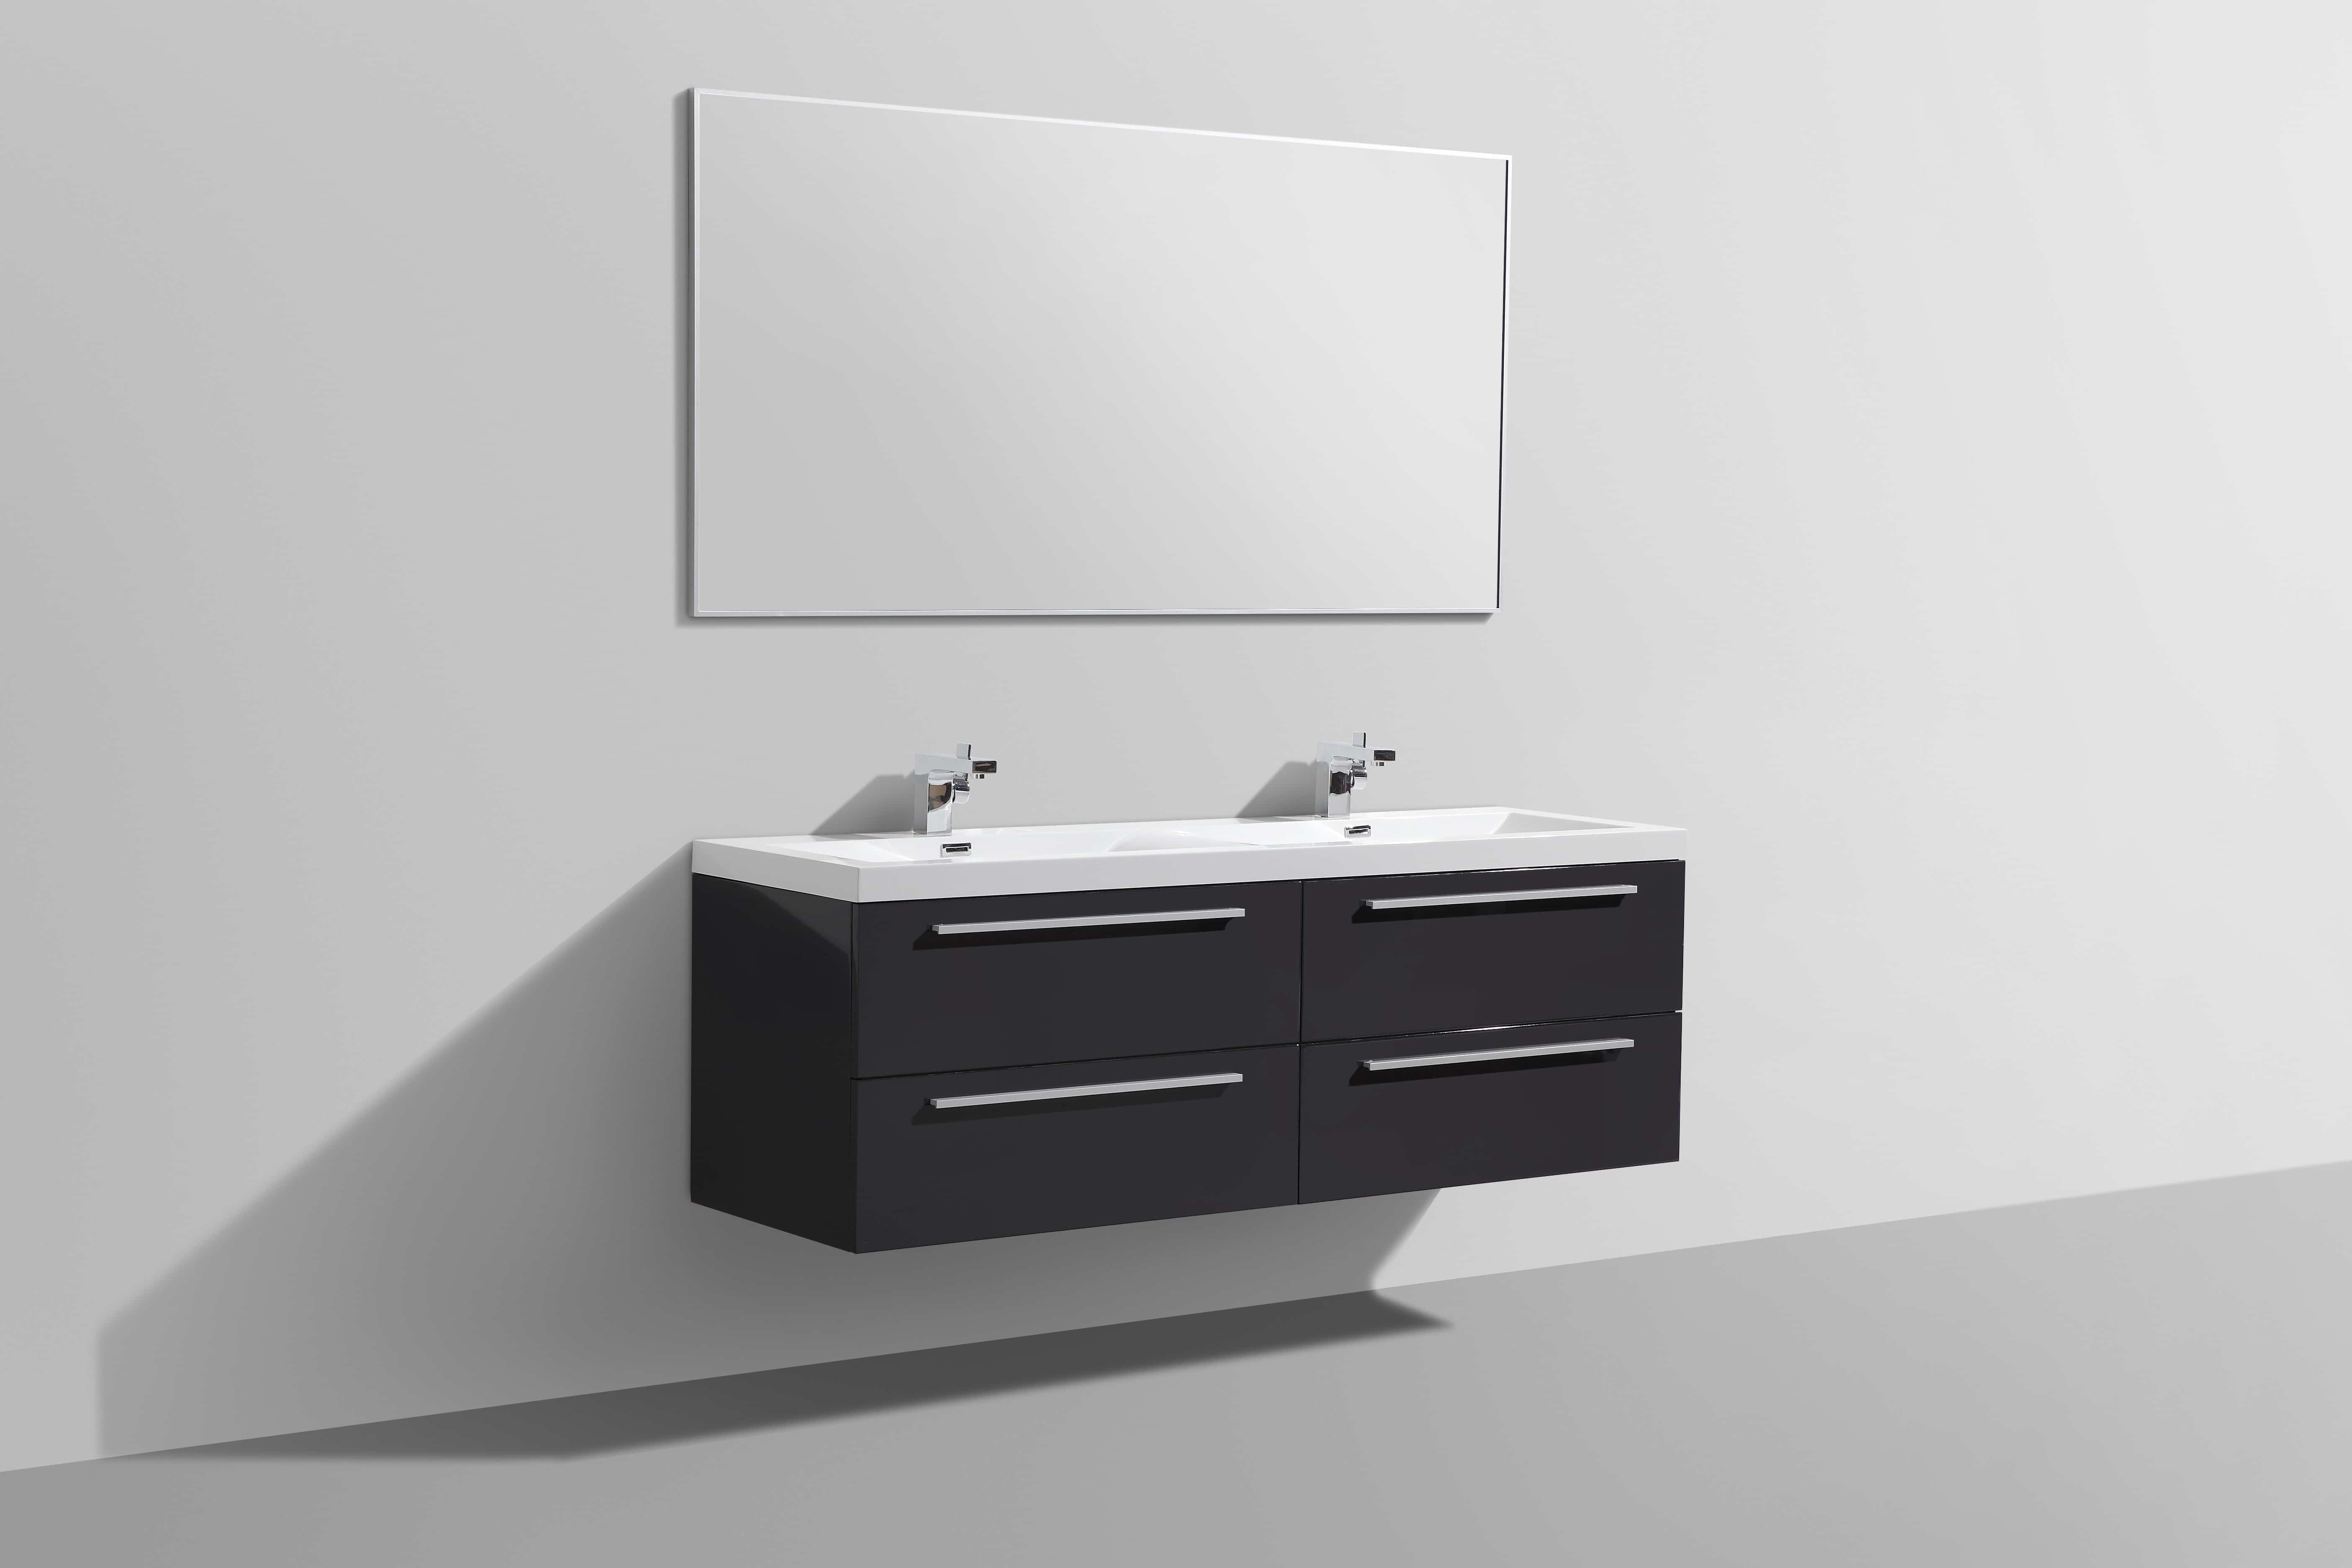 vanit pour salle de bain murano 48 pure design brossard. Black Bedroom Furniture Sets. Home Design Ideas